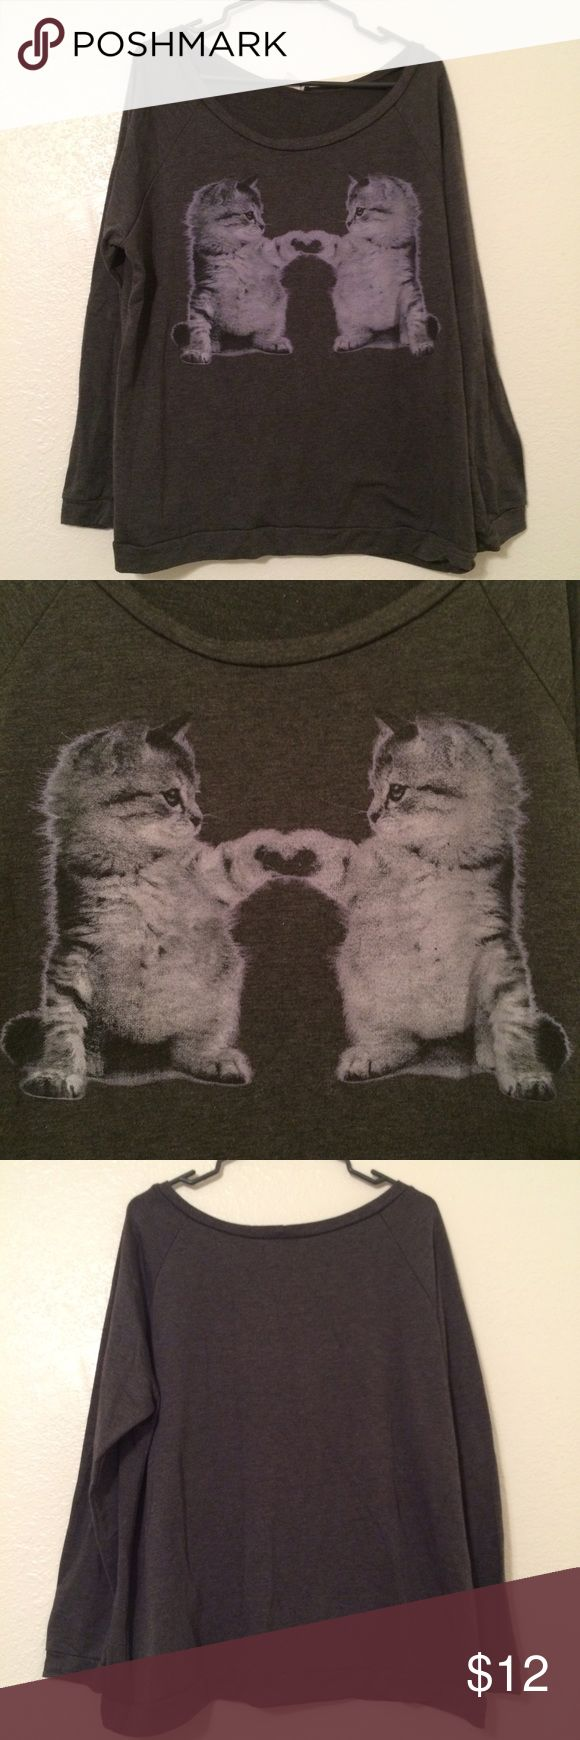 Deb shops Jr plus 3x grey cat kitten sweatshirt Deb brand. Juniors plus size 3x. Good used condition! Lightweight sweatshirt with scoop neck. Features mirrored kittens touching paws! Make me an offer! Deb Tops Sweatshirts & Hoodies